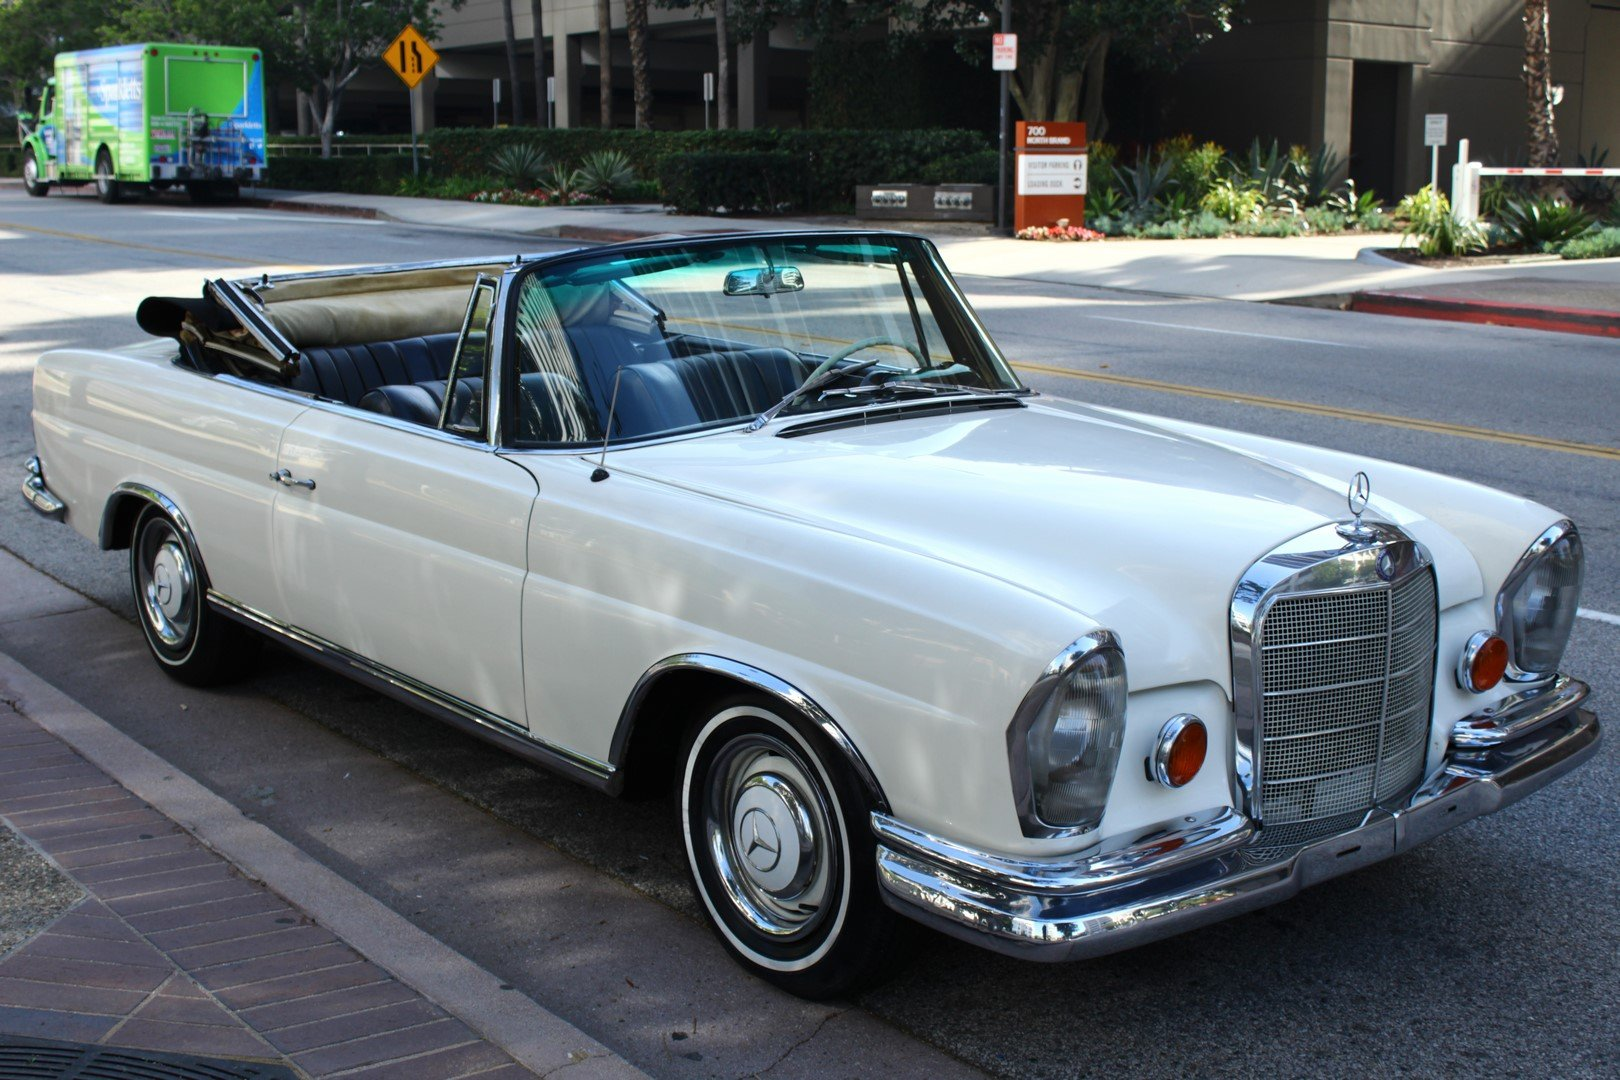 1966 MERCEDES-BENZ 250SE For Sale (picture 1 of 6)